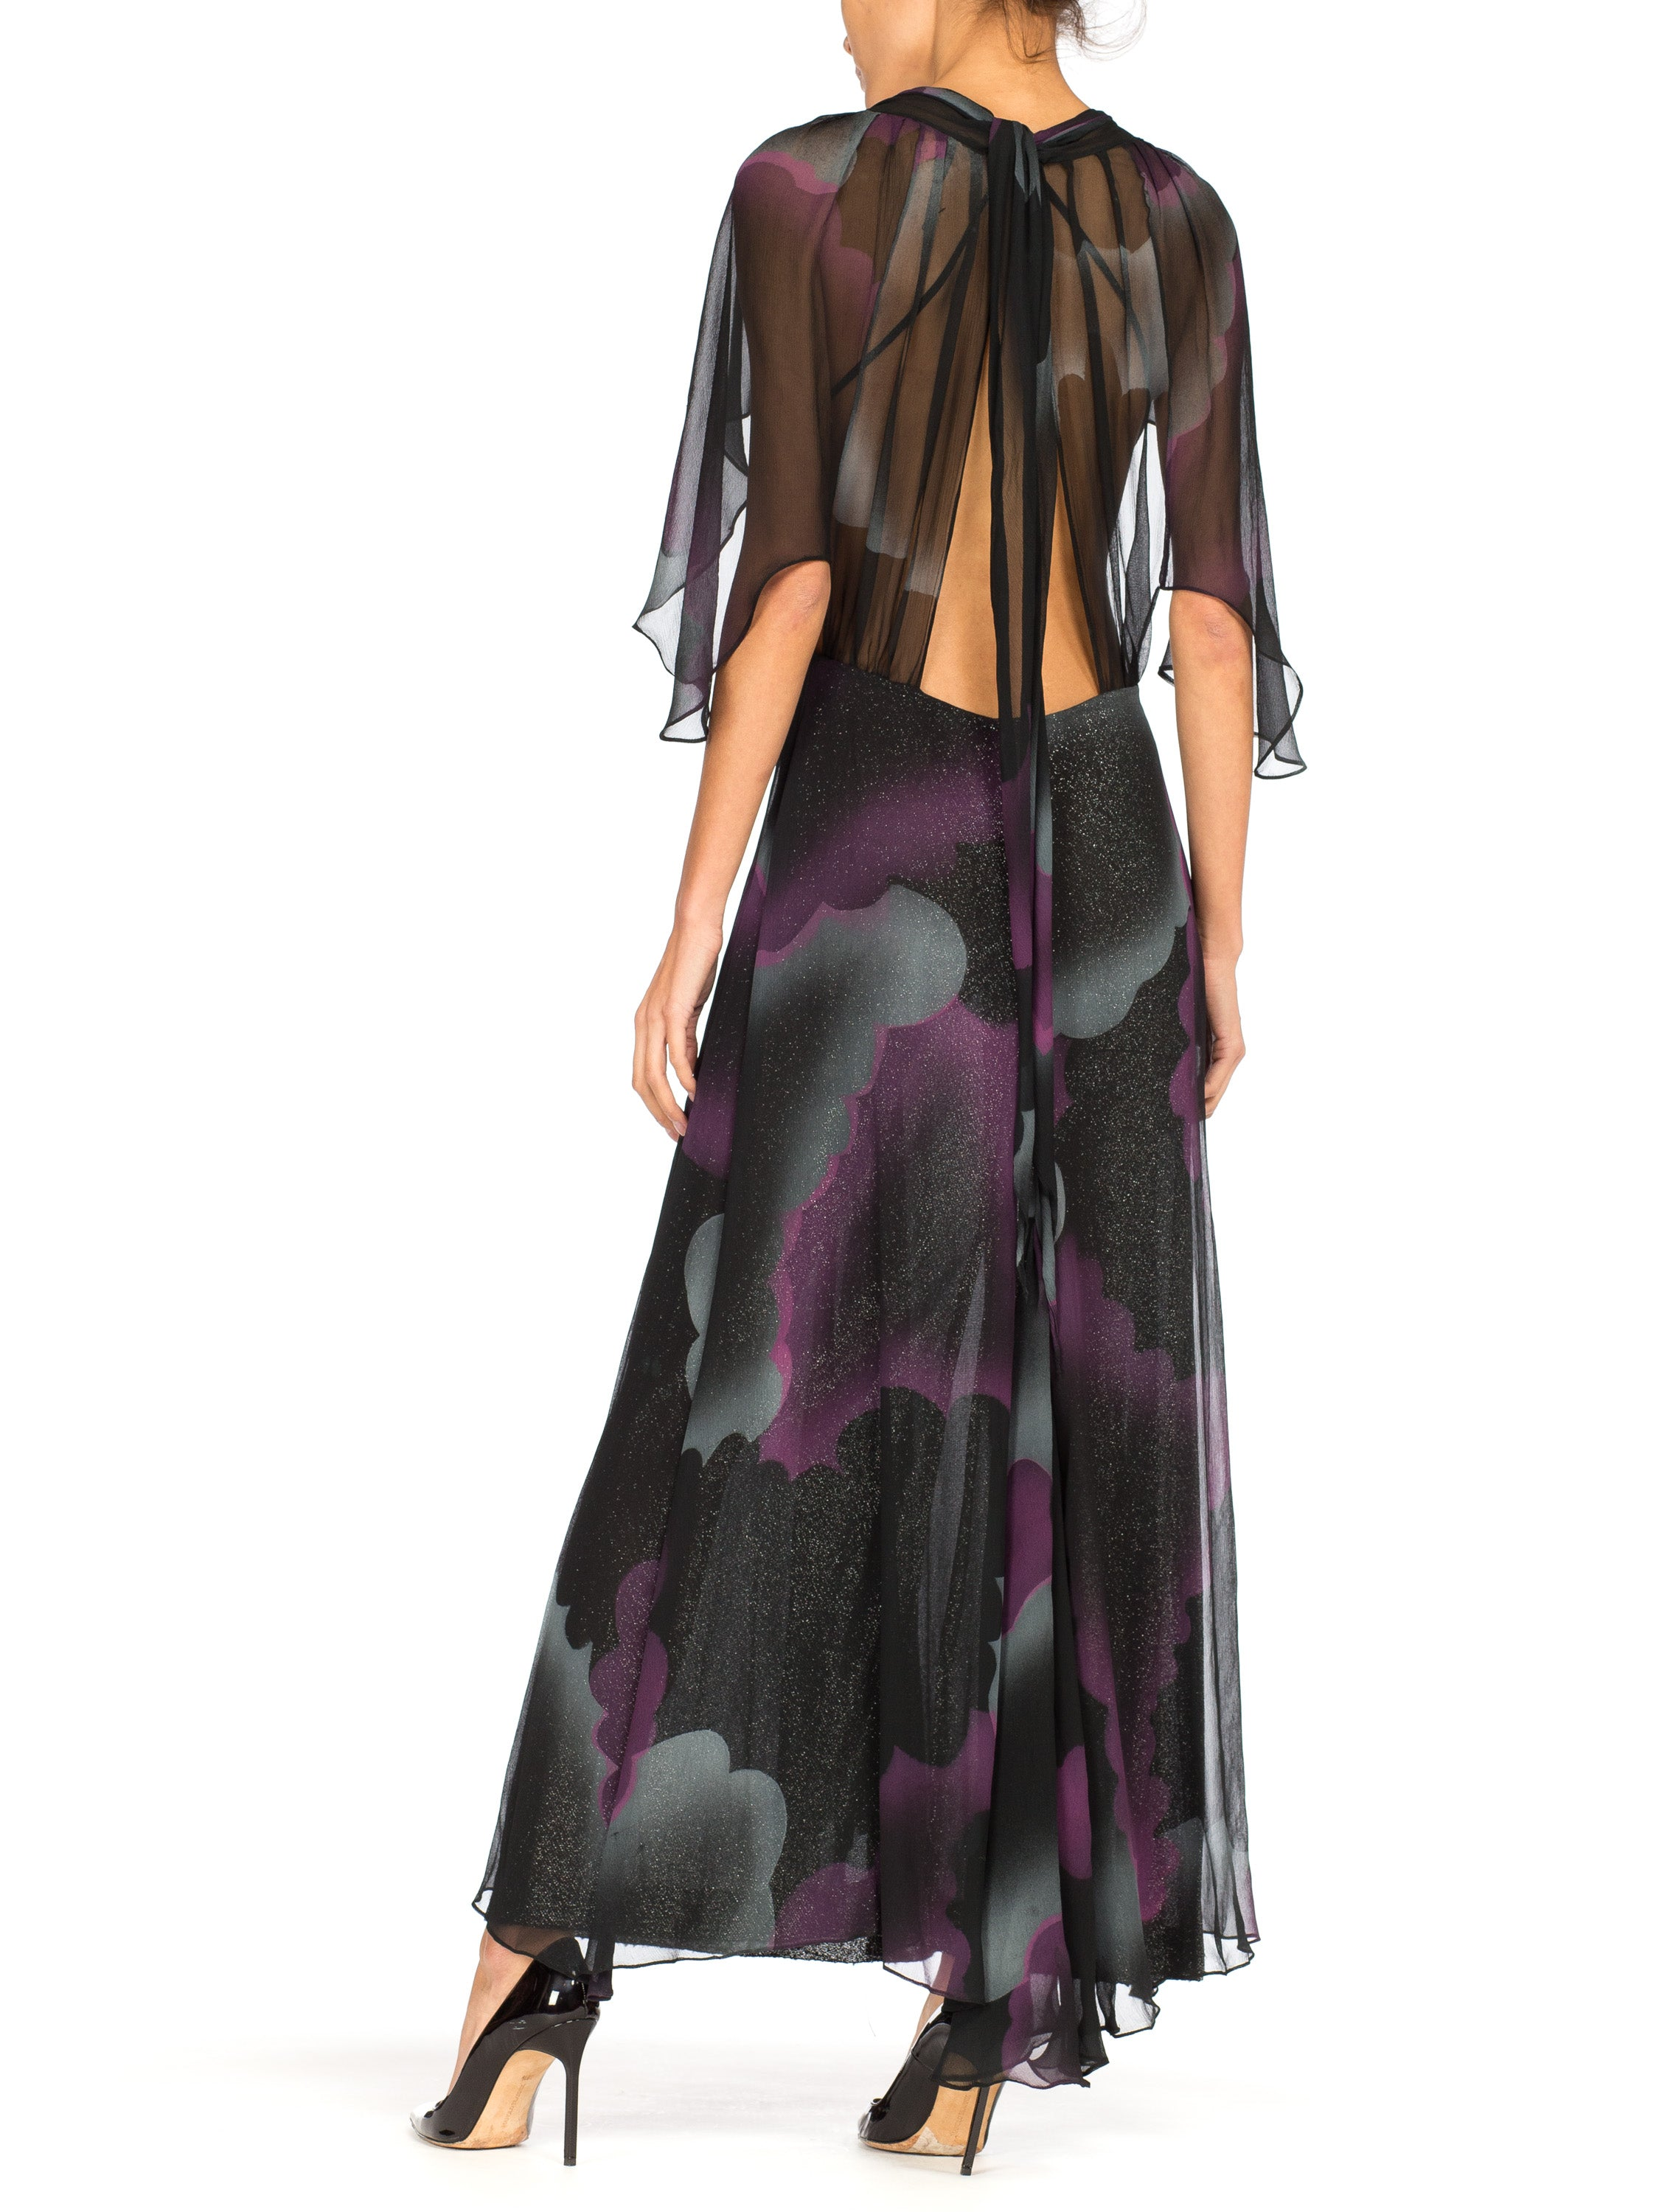 Morphew Collection Black Metallic Silk & Lurex Chiffon Low Cut Stormy Flutter Sleeve Gown